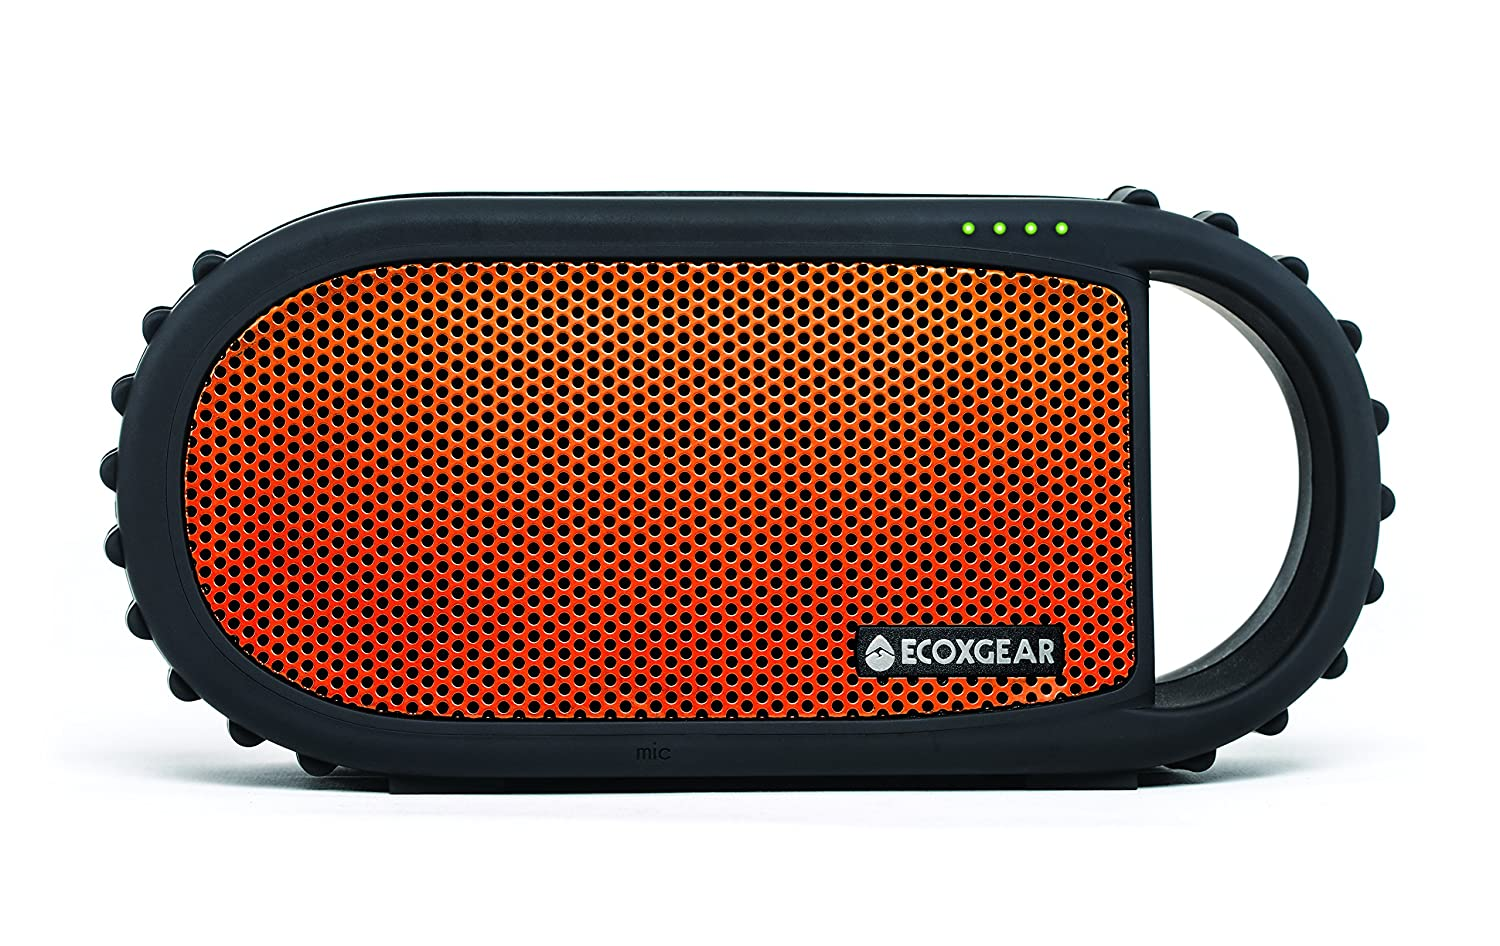 ECOXGEAR ECOCARBON Waterproof Bluetooth Speaker, Speakers Under 100